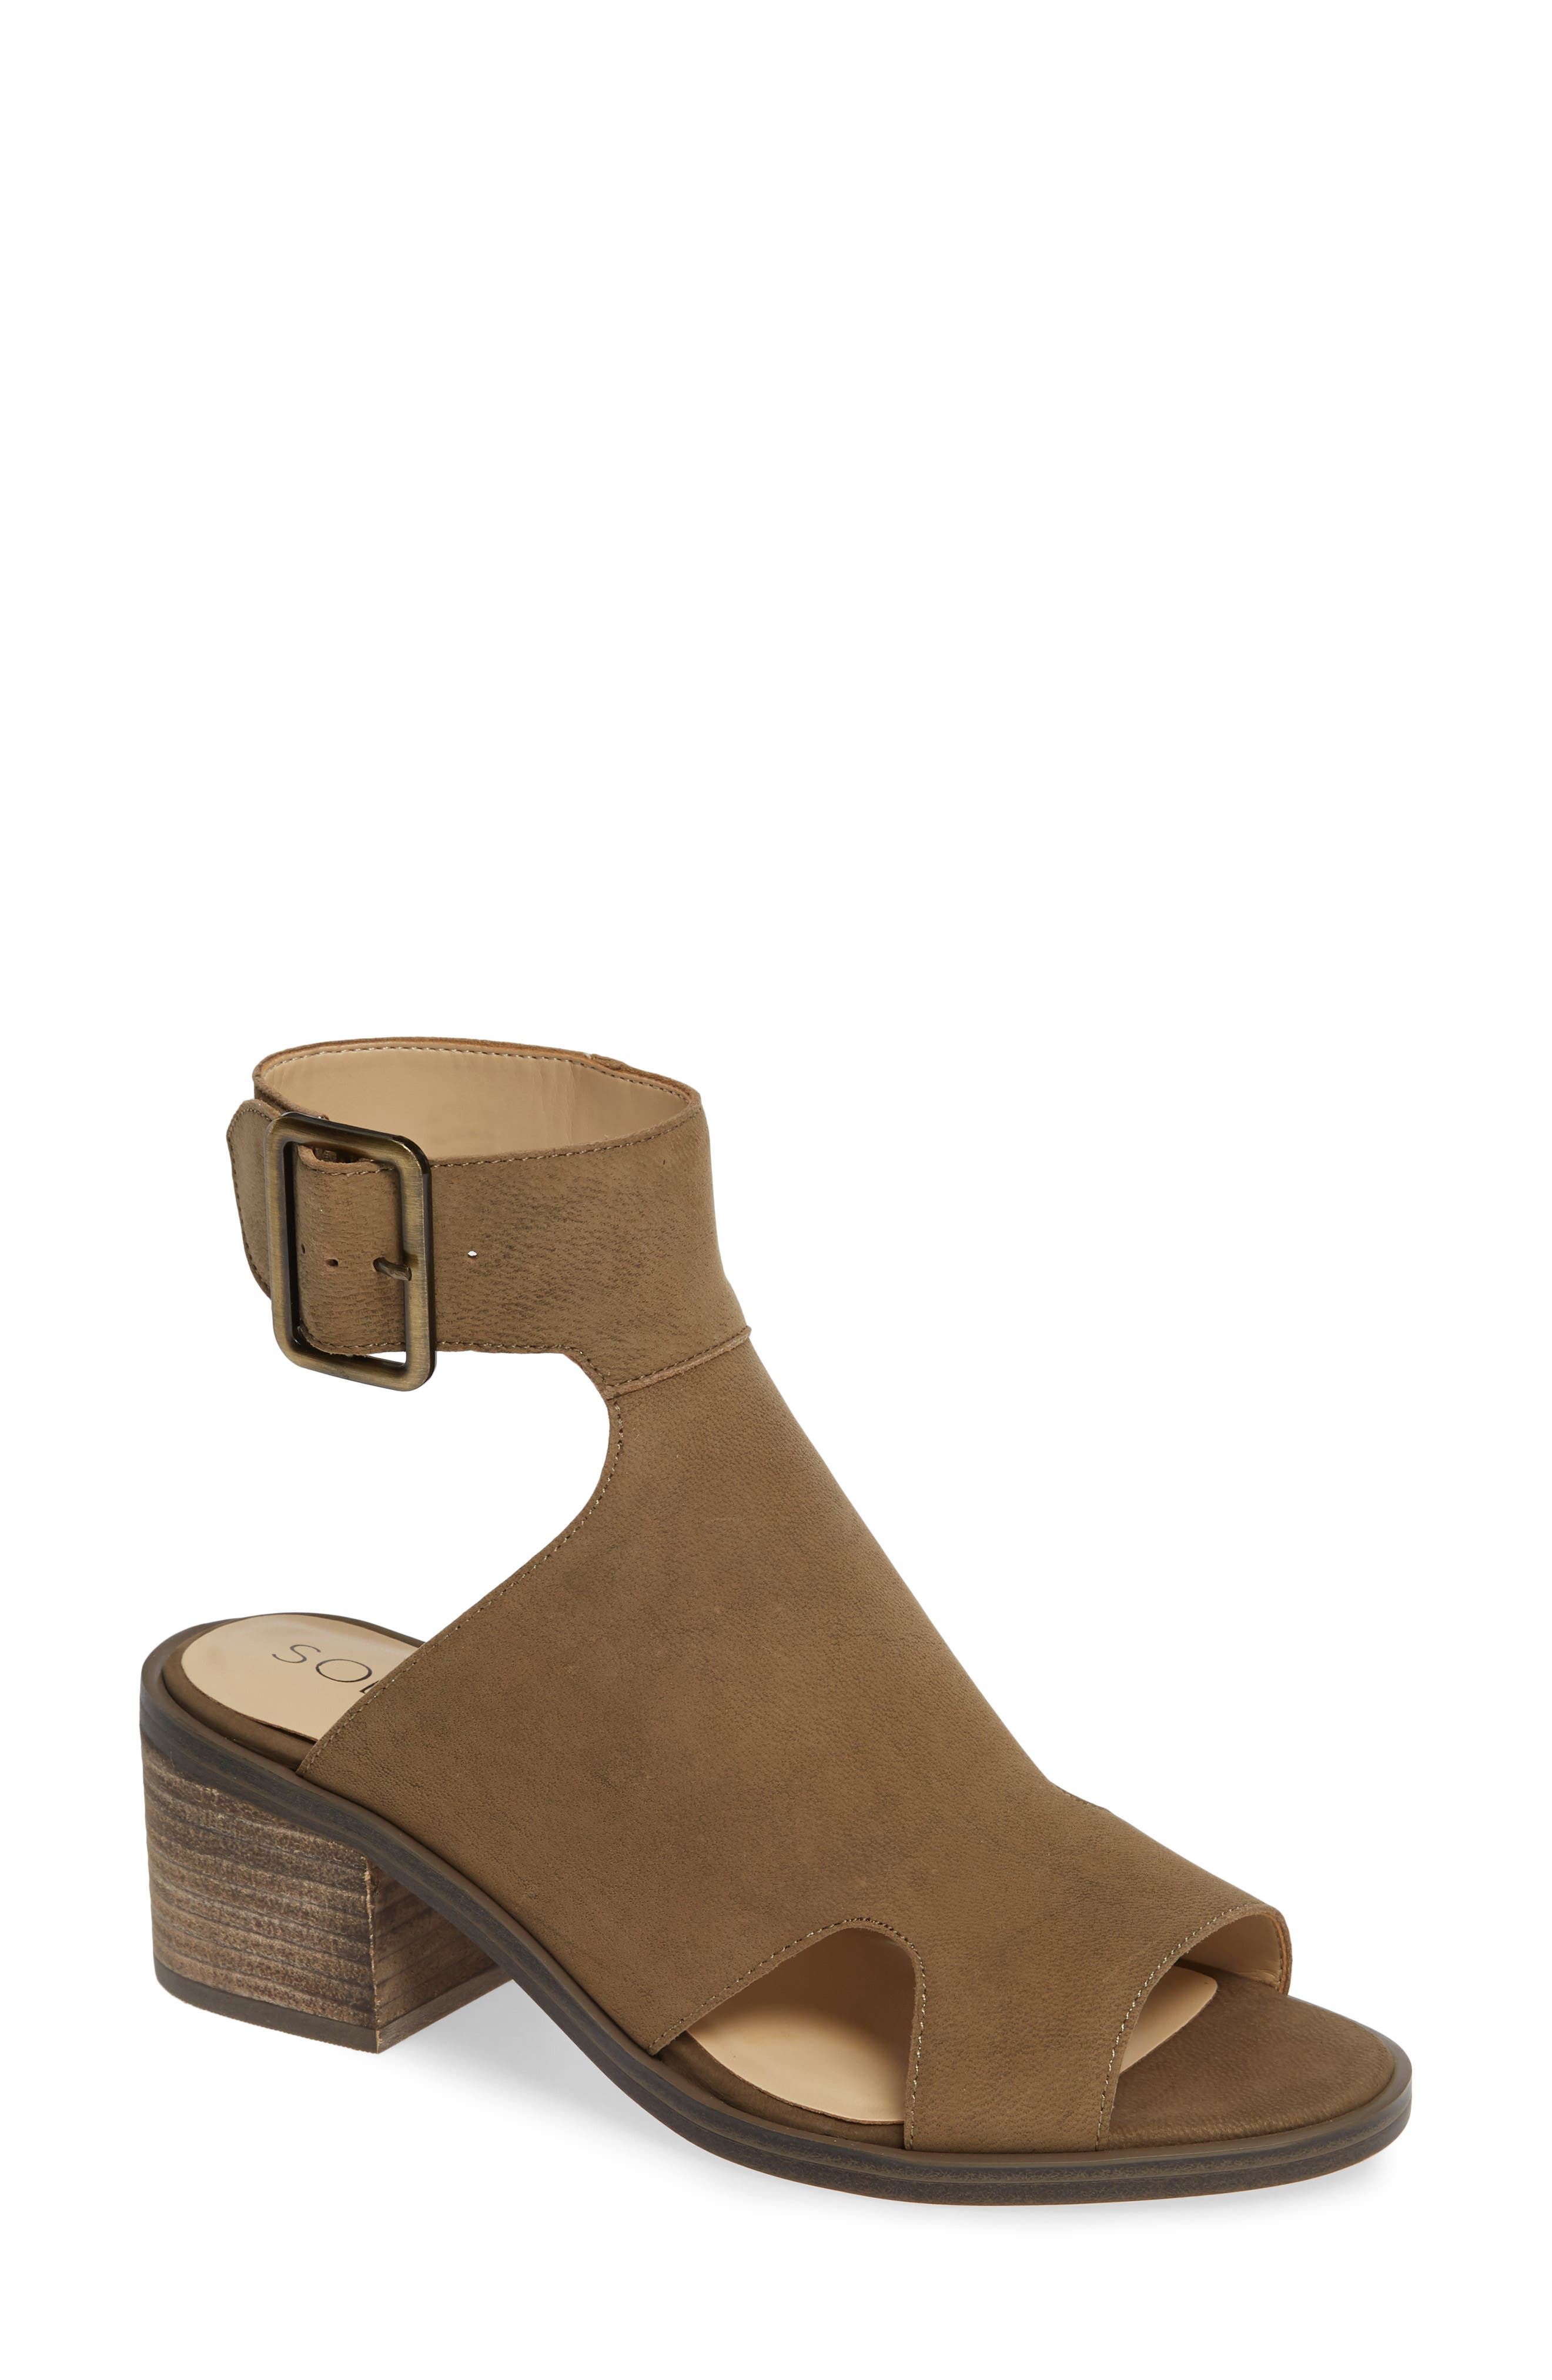 Tally Ankle Cuff Sandal,                             Main thumbnail 1, color,                             343